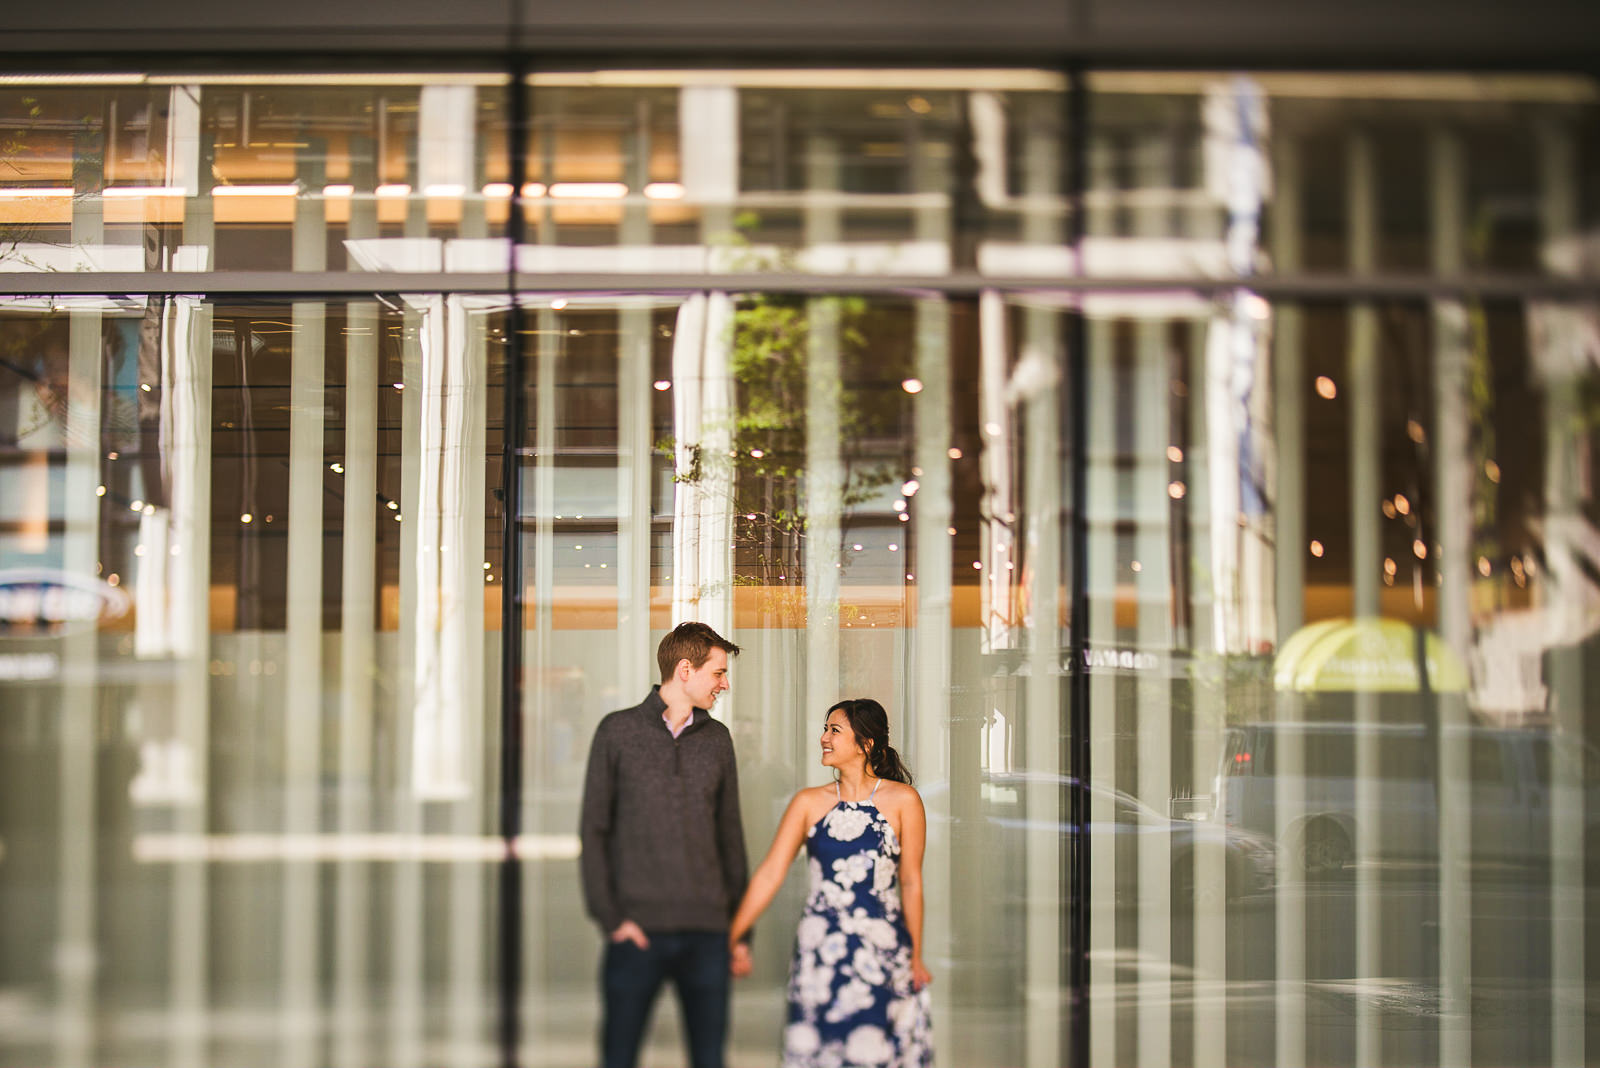 04 downtown chicago engagement photos - Downtown Chicago Engagement Session // Linhda + Jamie